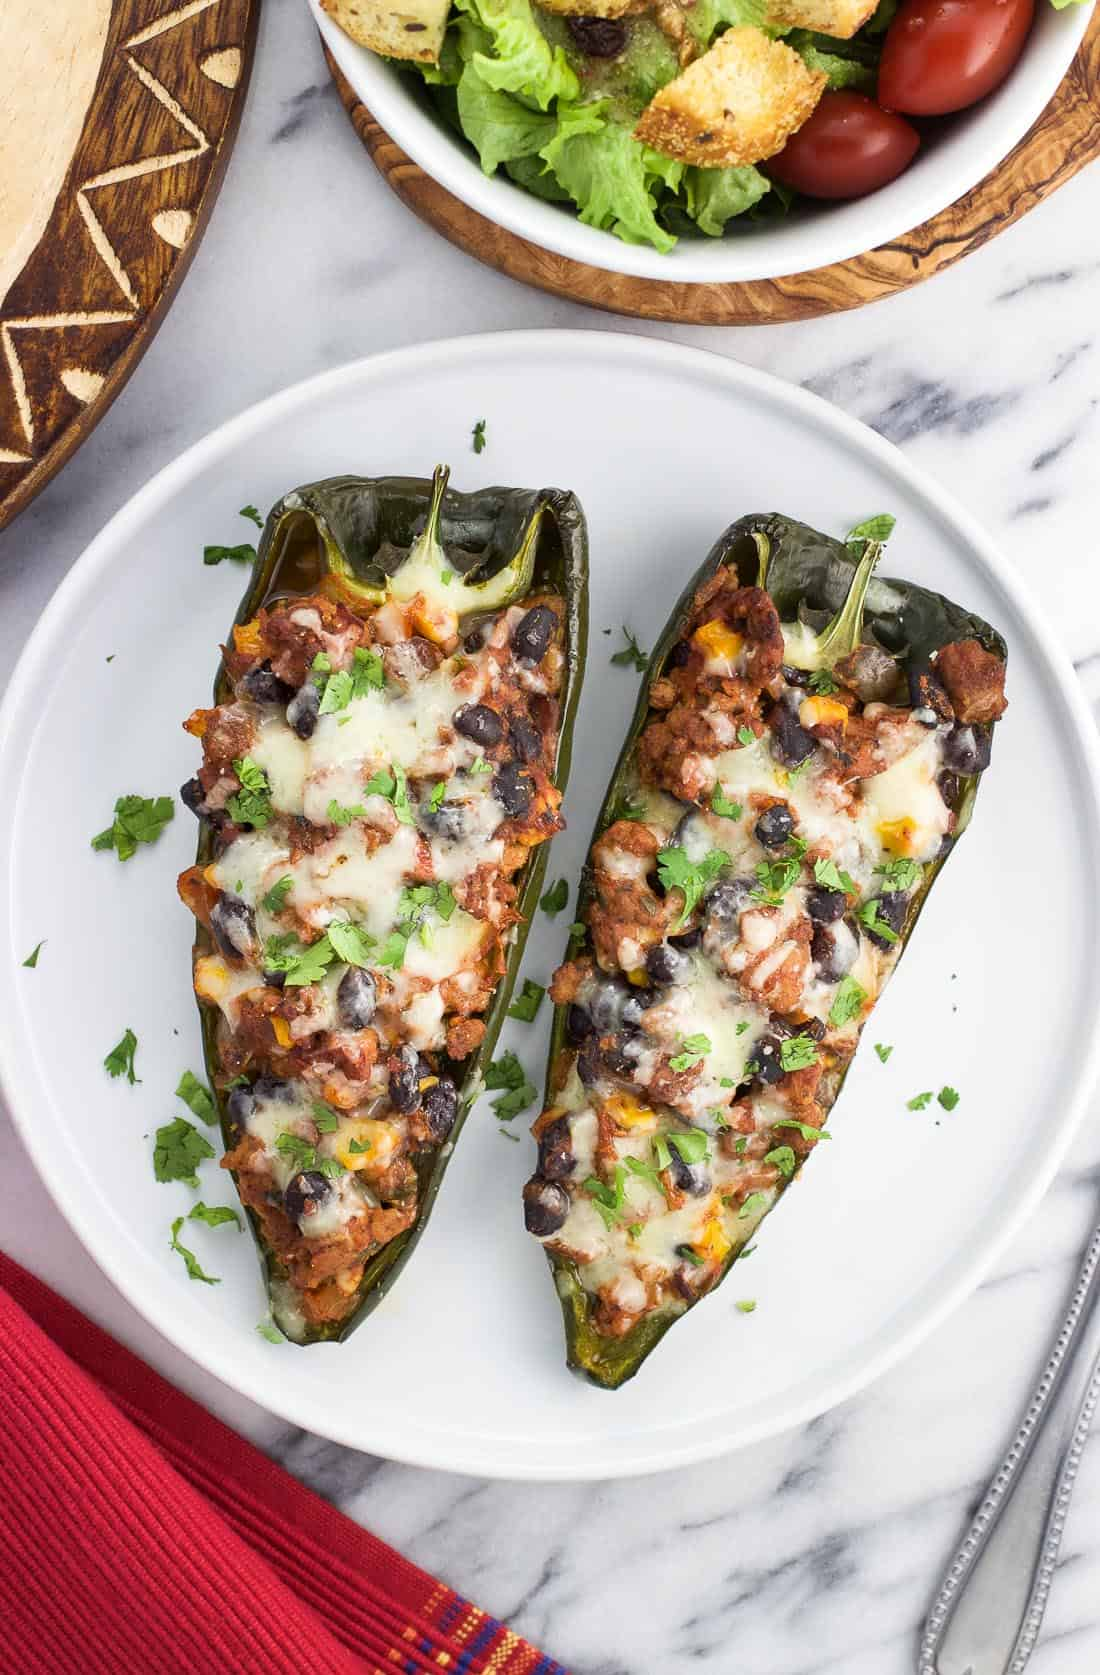 Two stuffed poblano pepper halves on a plate